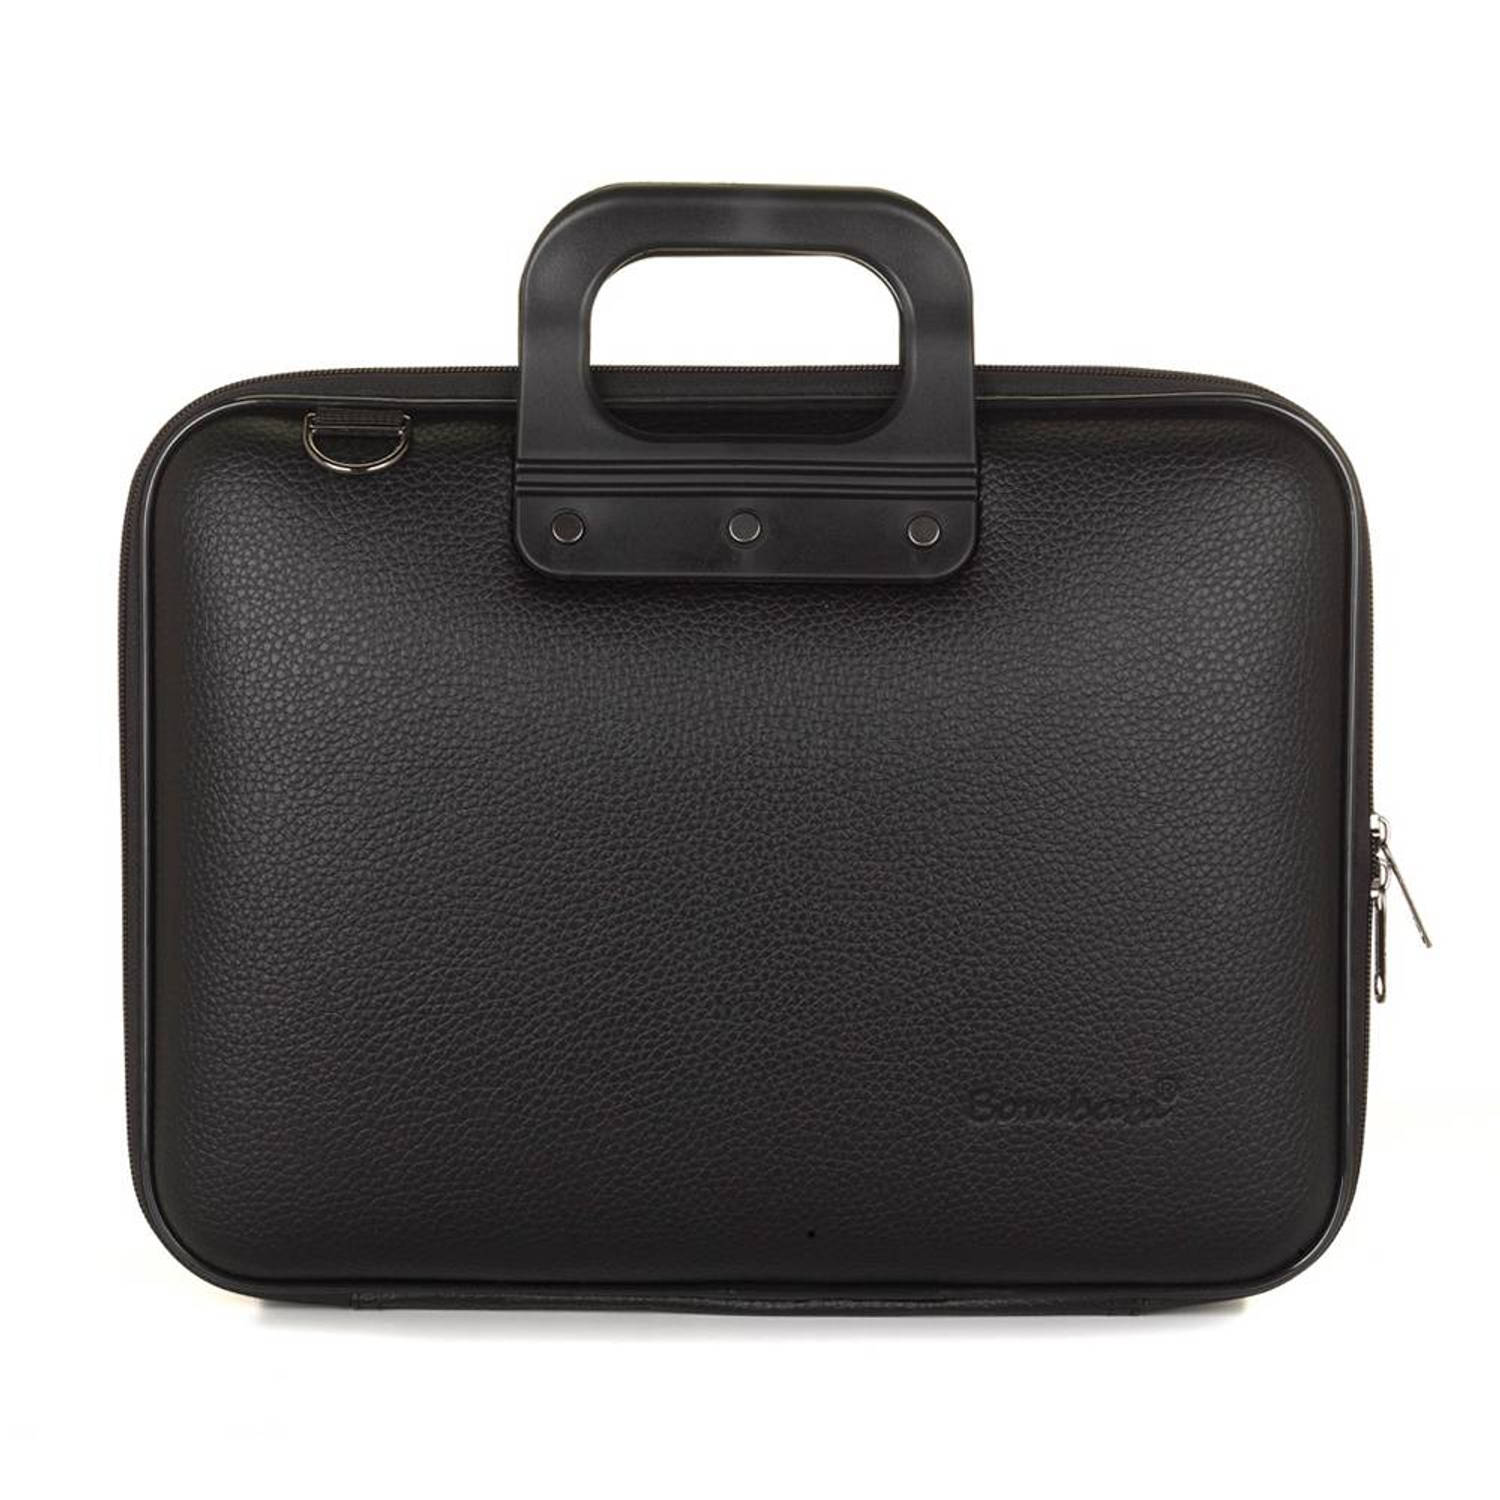 Bombata All Black CLASSIC 13 inch Laptoptas Zwart